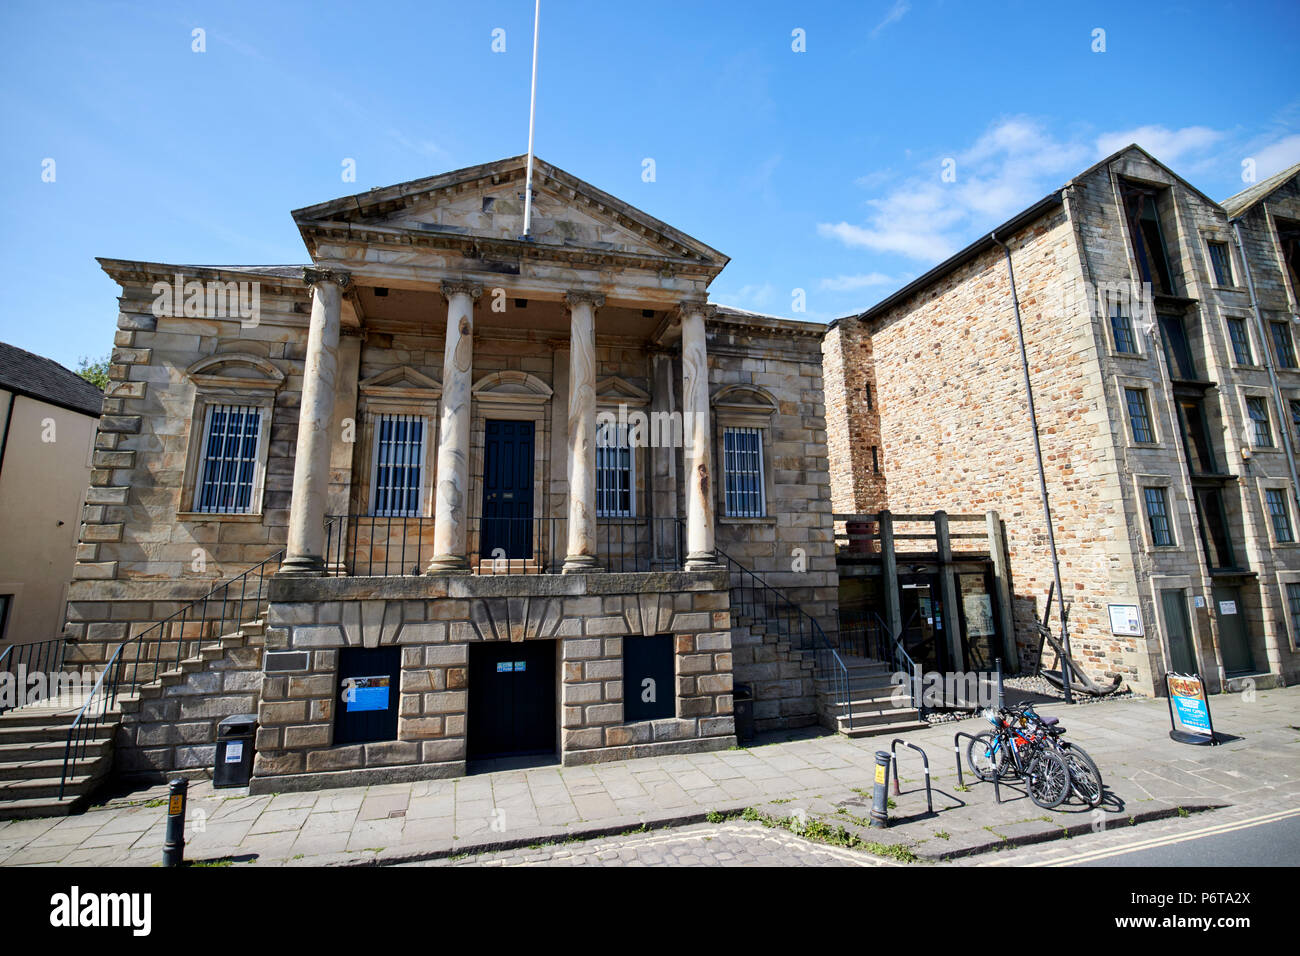 Lancaster maritime museum in the old custom house st georges quay lancaster england uk - Stock Image